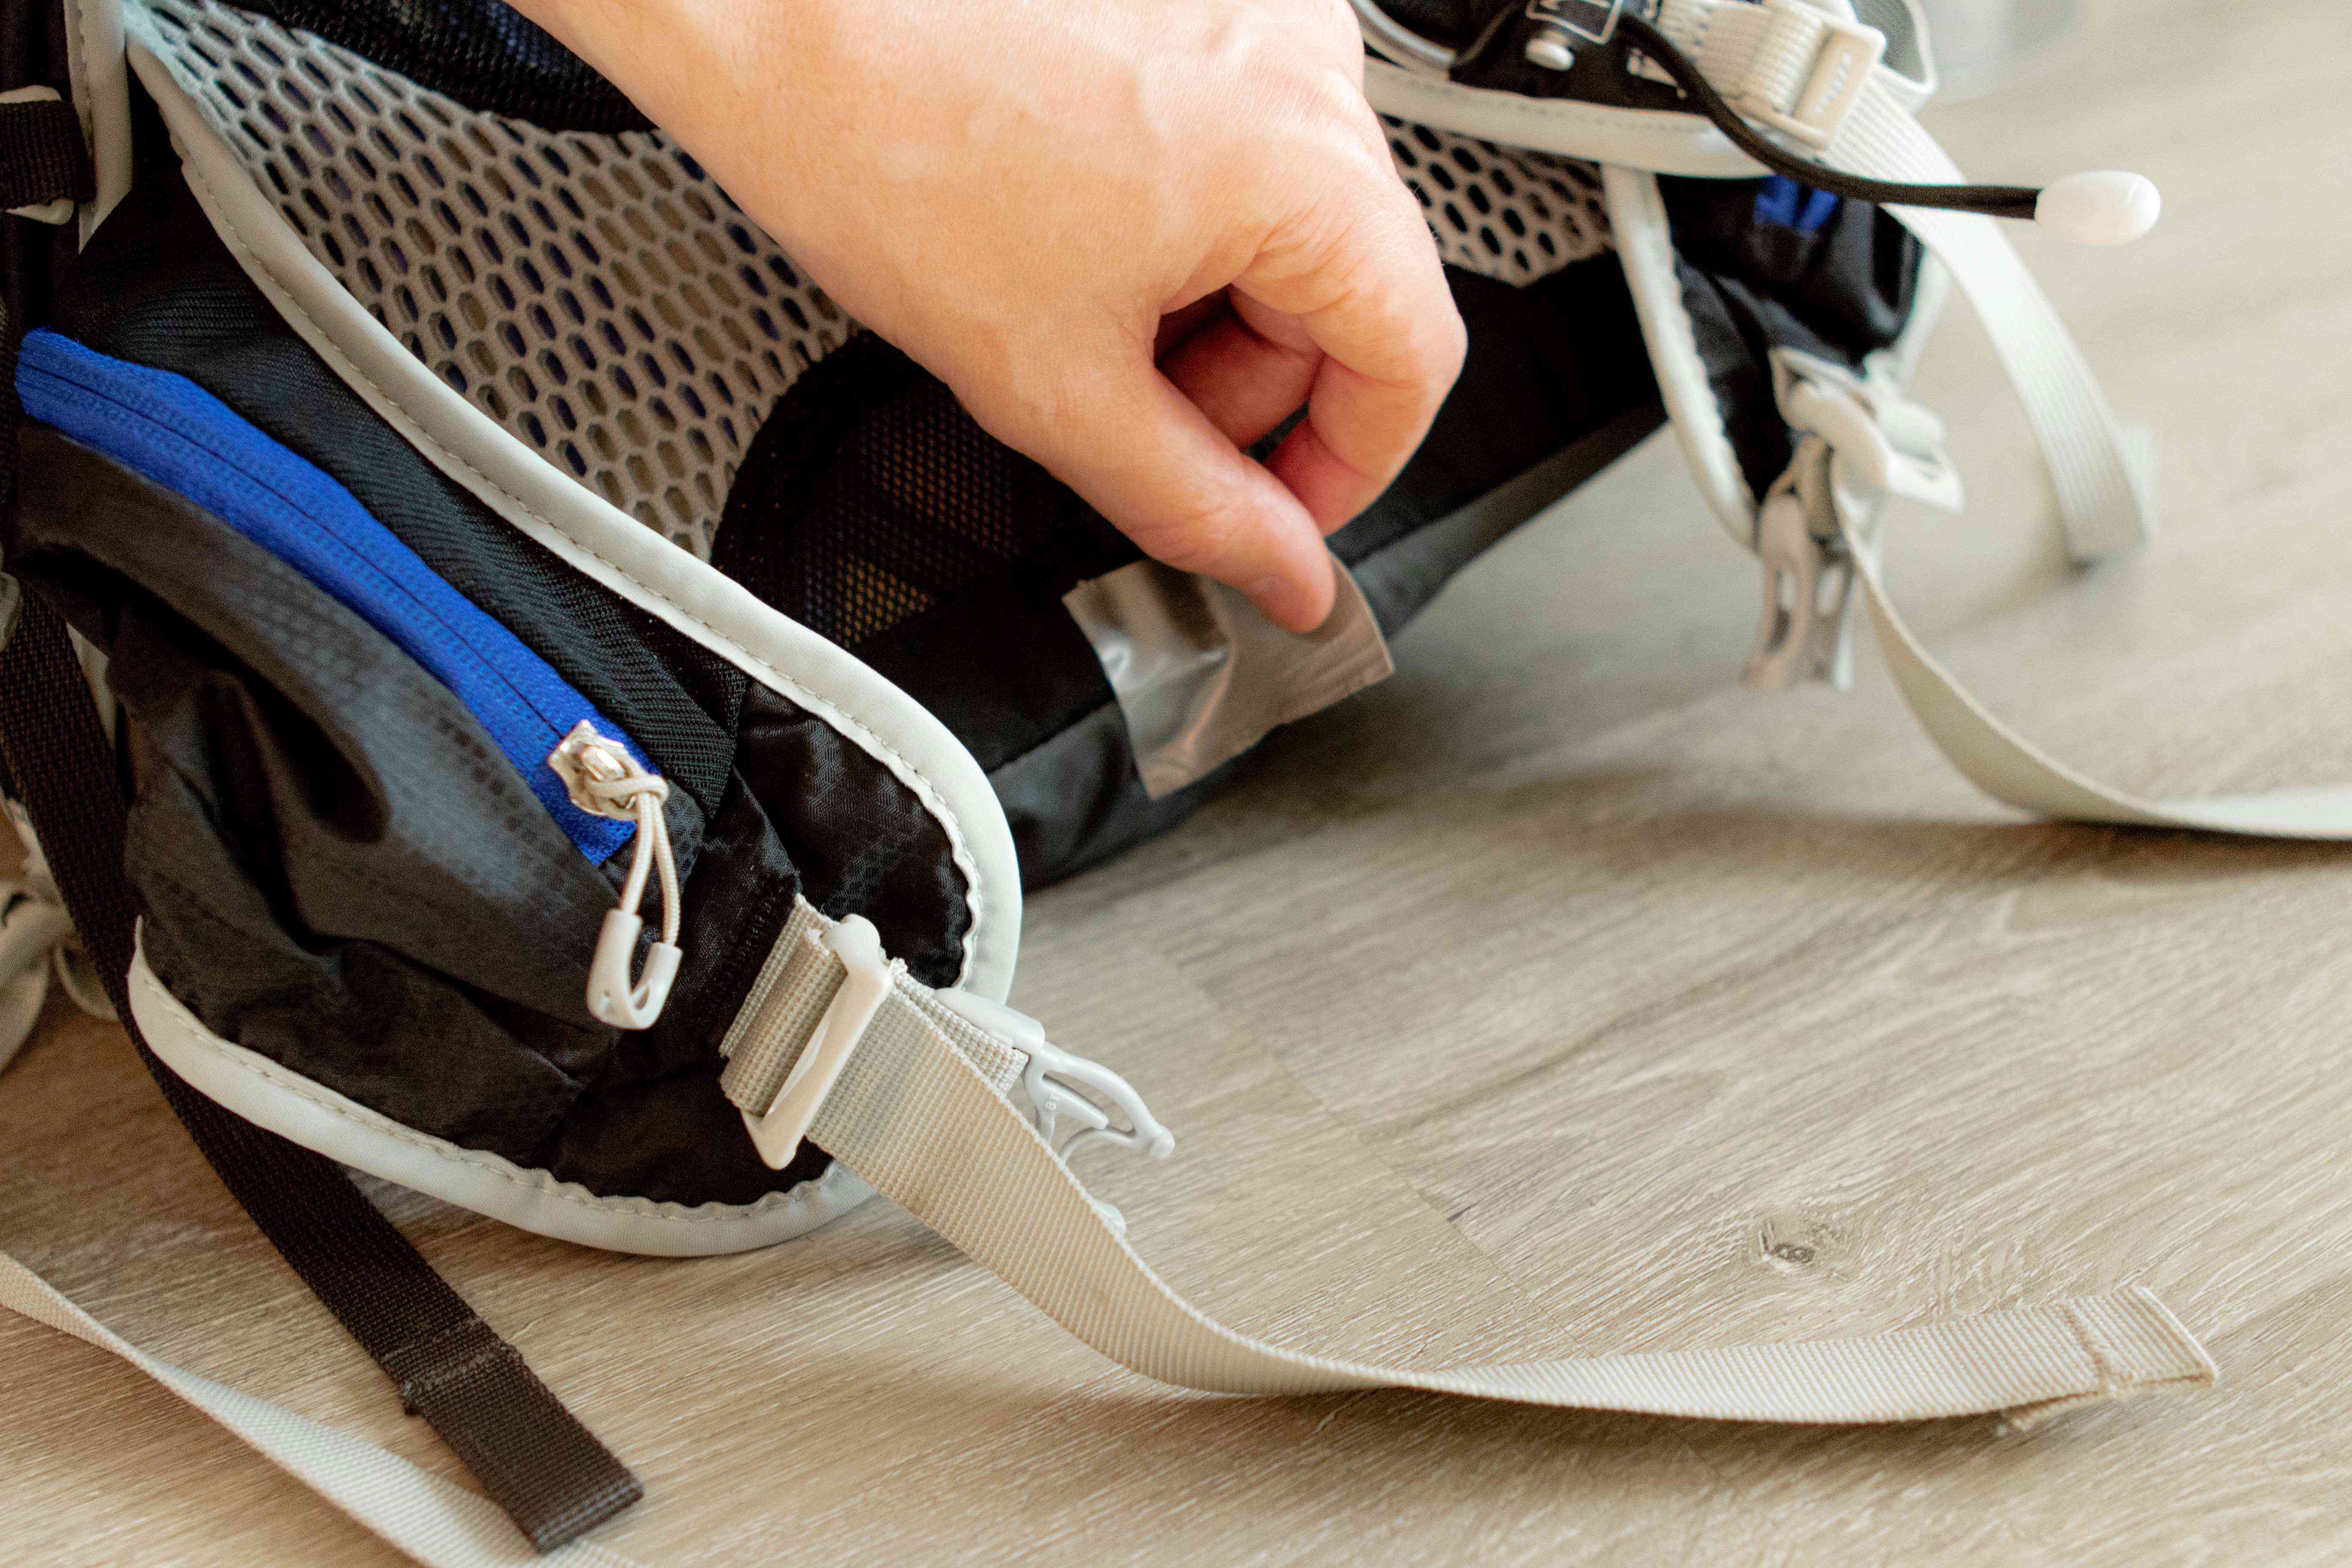 hand uses duct tape to repair bottom of backpack